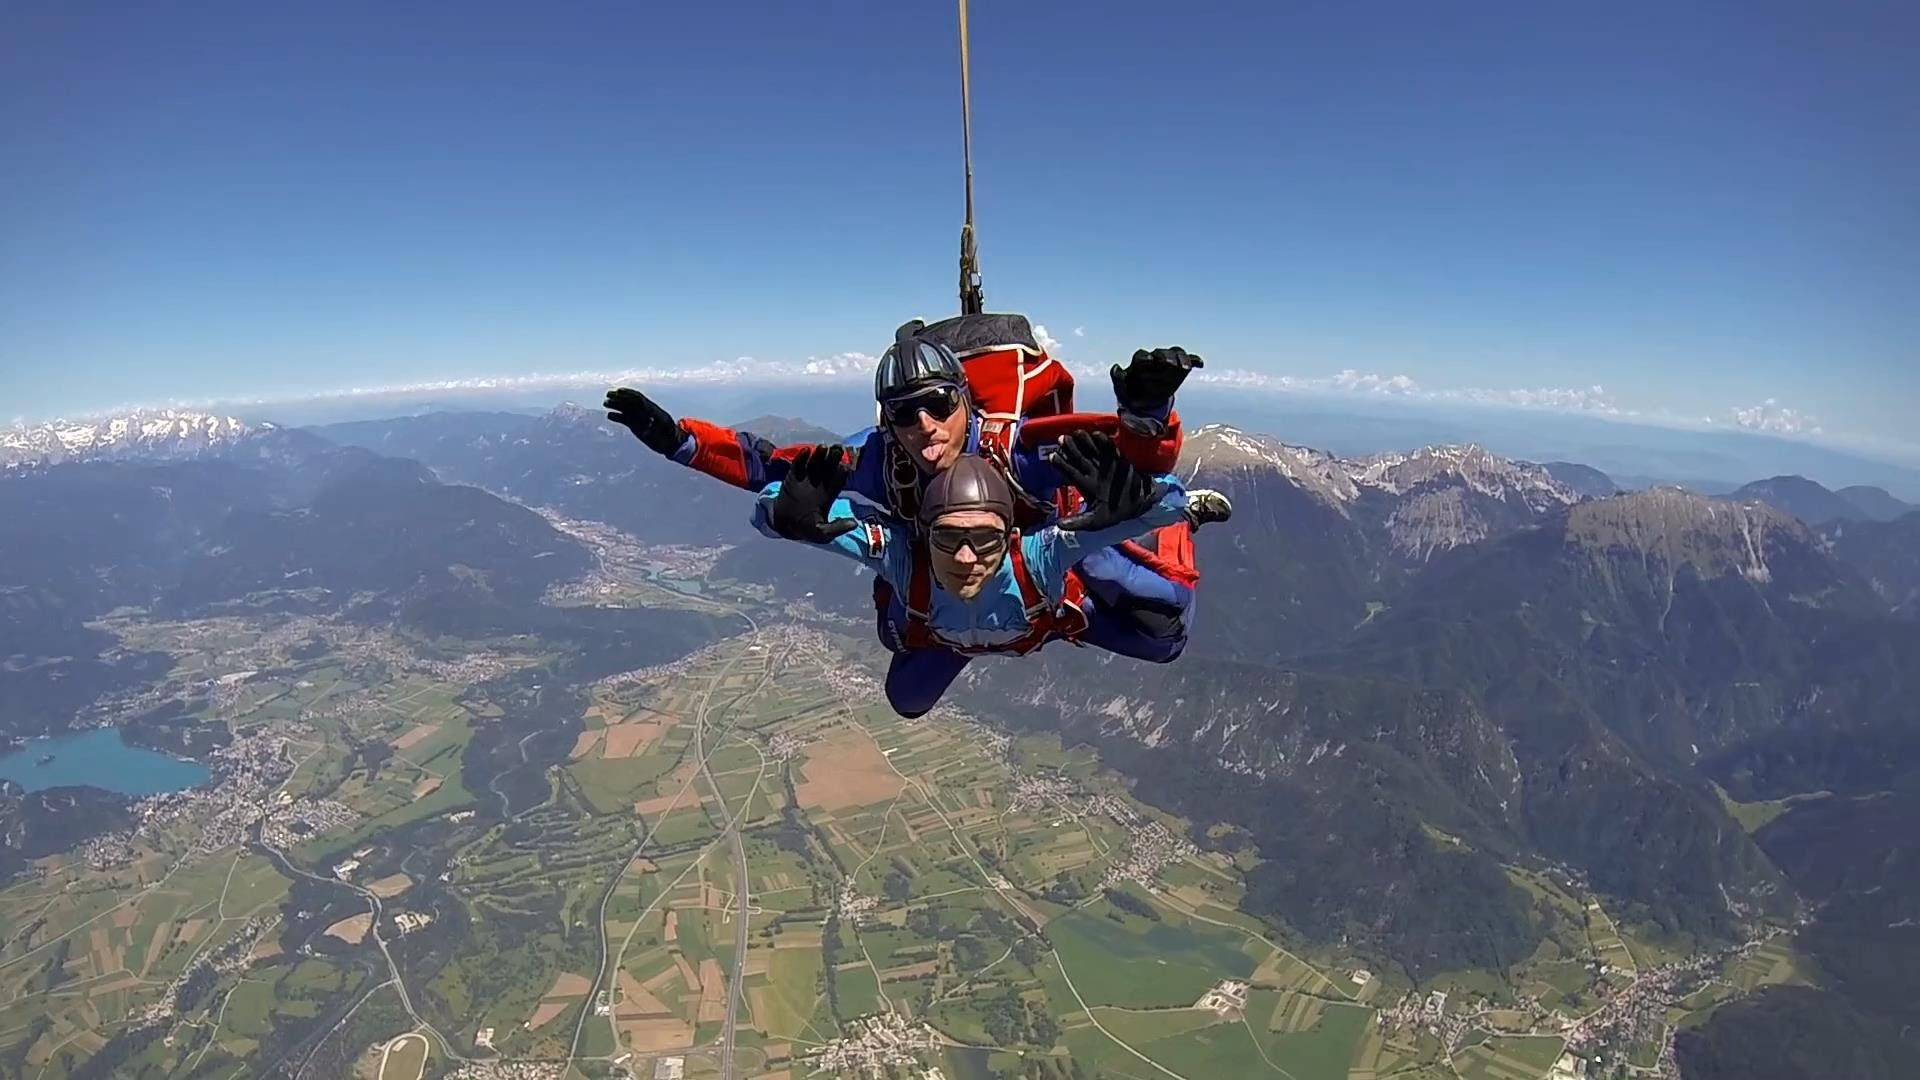 Tandem skydiving near Bled in Slovenia